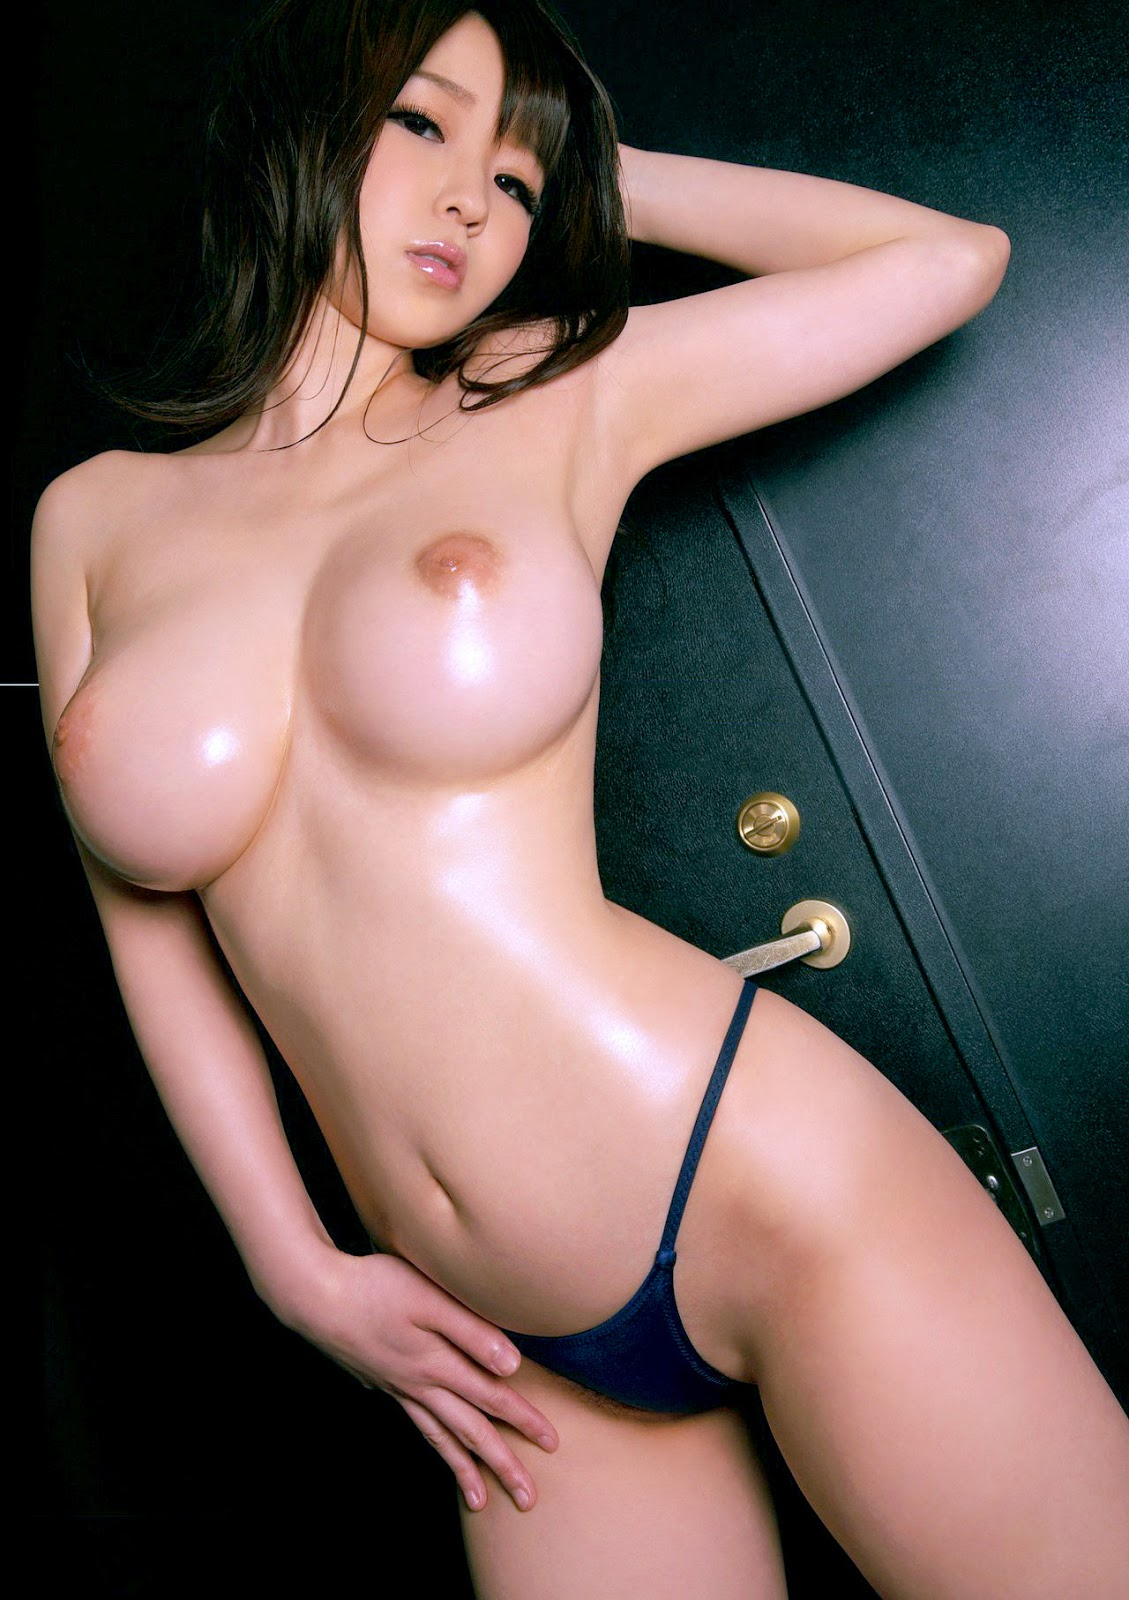 Lesbian Cougars Tumblr Awesome best selfie porn pictures | lovemybeaut - hot sexy nude girl